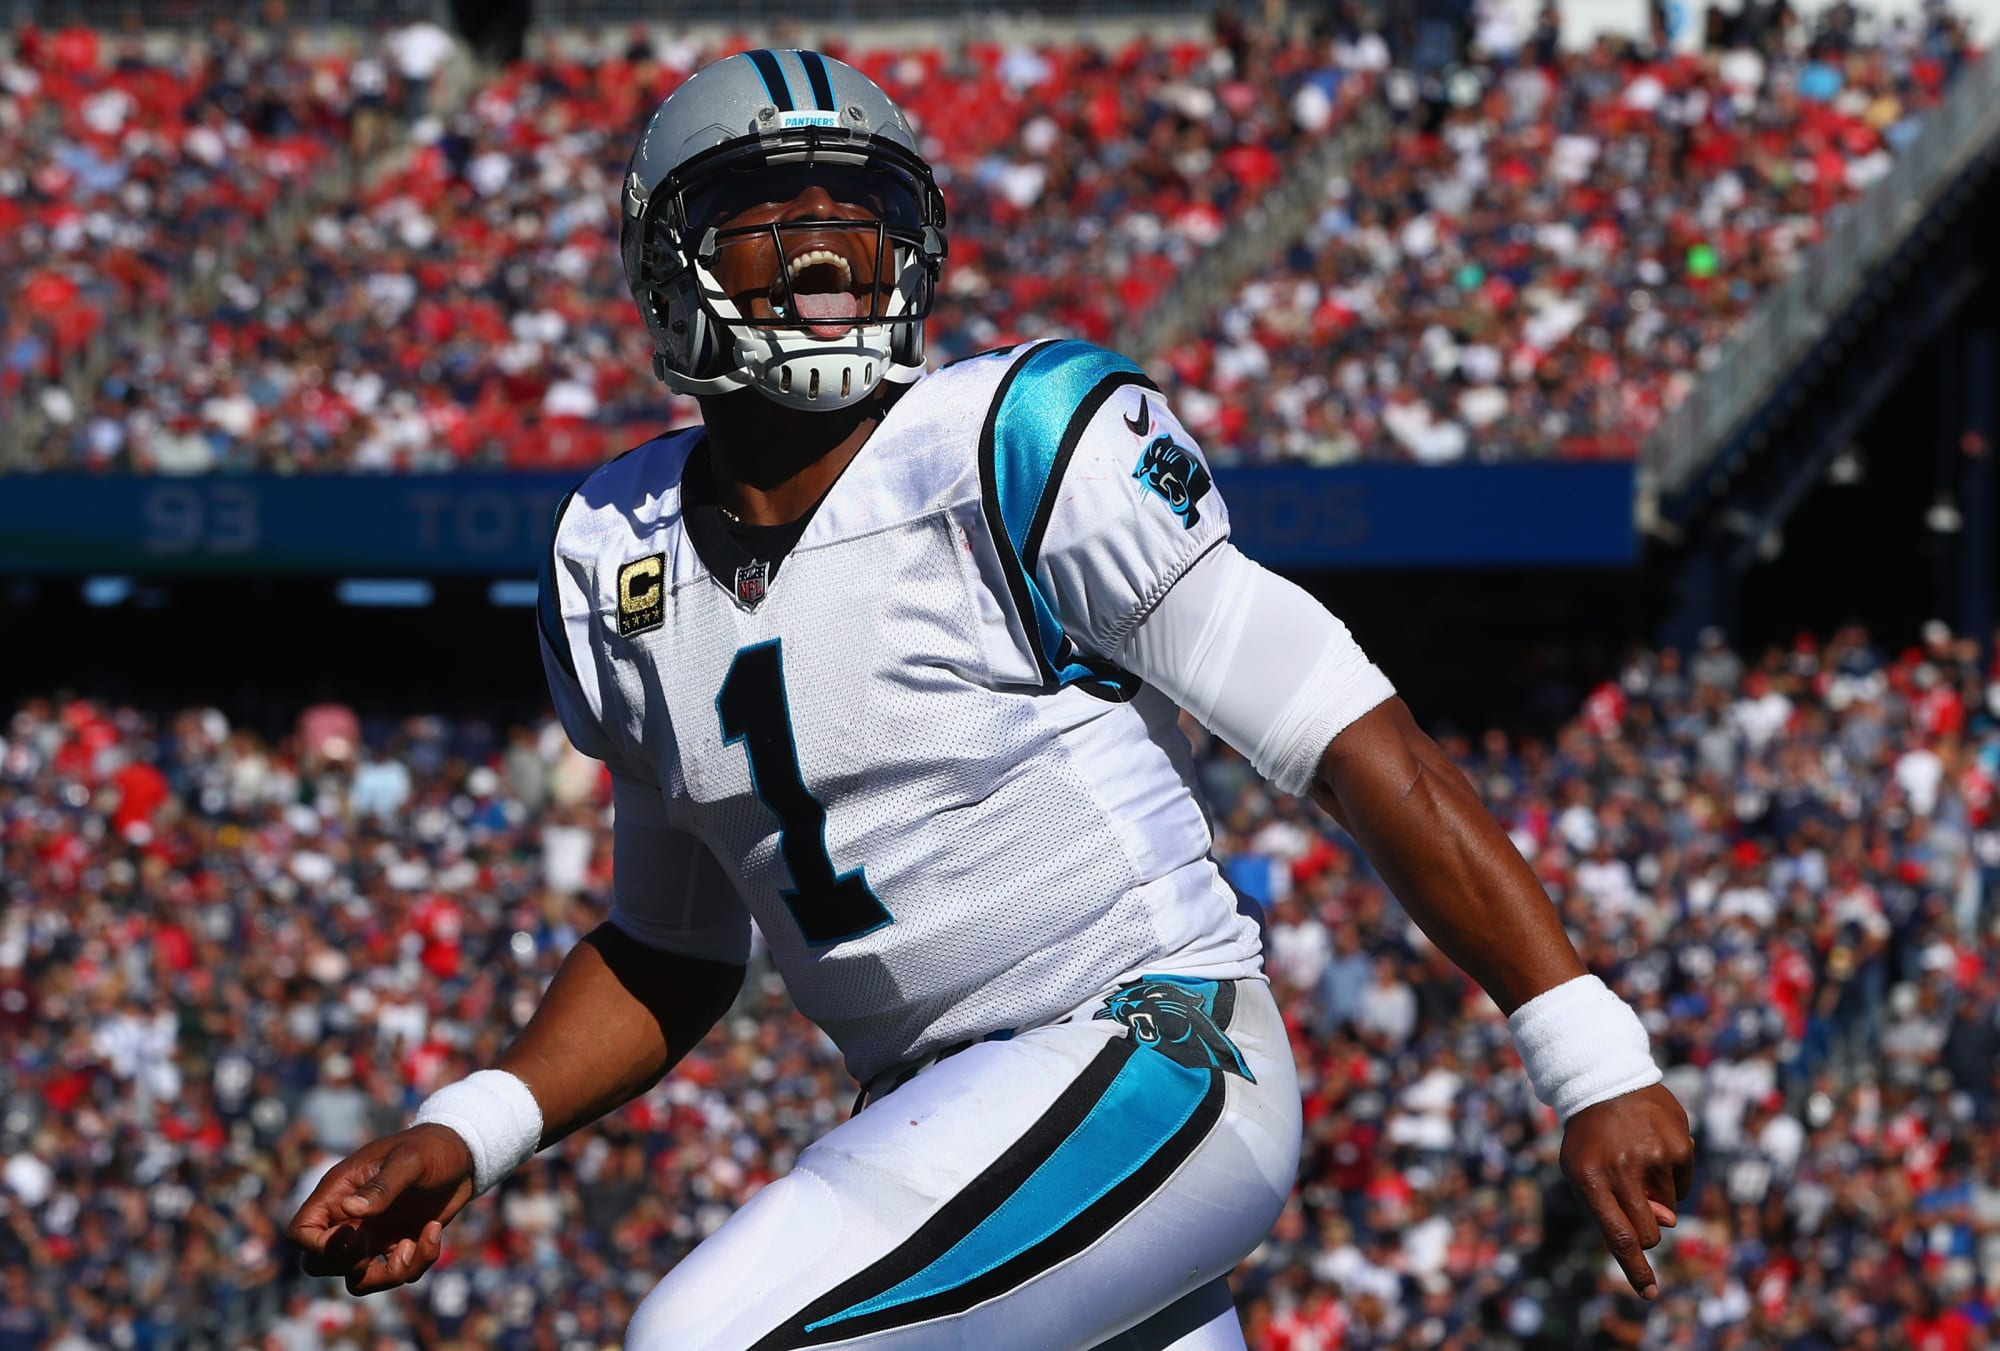 Patriots: Cam Newton's Latest Instagram Proves He's Already Hard at Work on Playbook